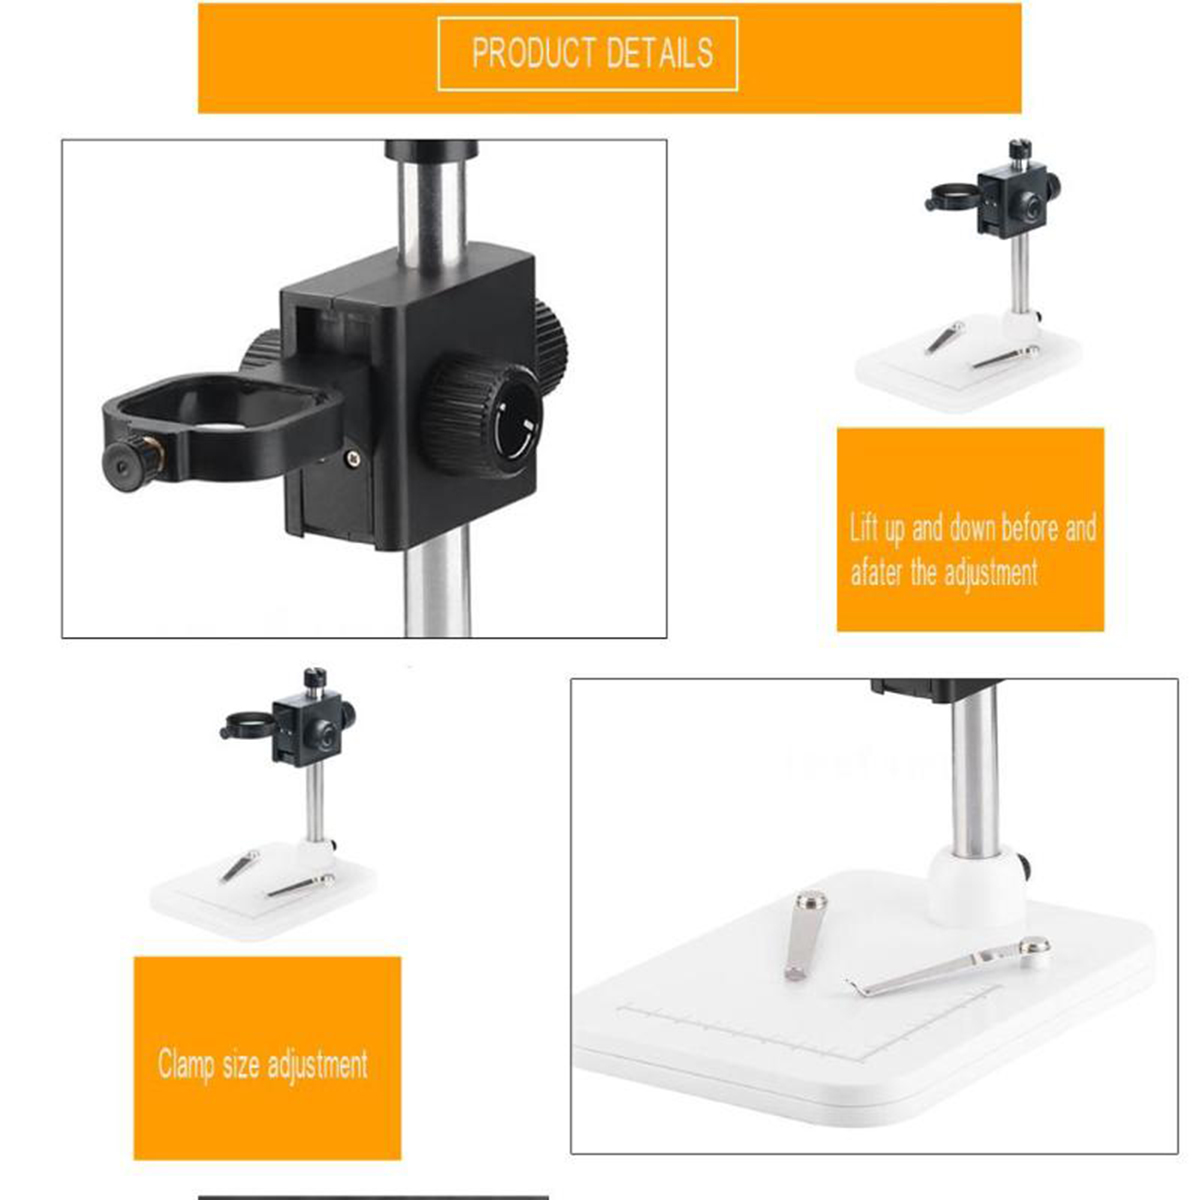 1000x Mega Pixels Digital Microscope with LCD Display and 8 LEDs Stand for Motherboard Repair 4